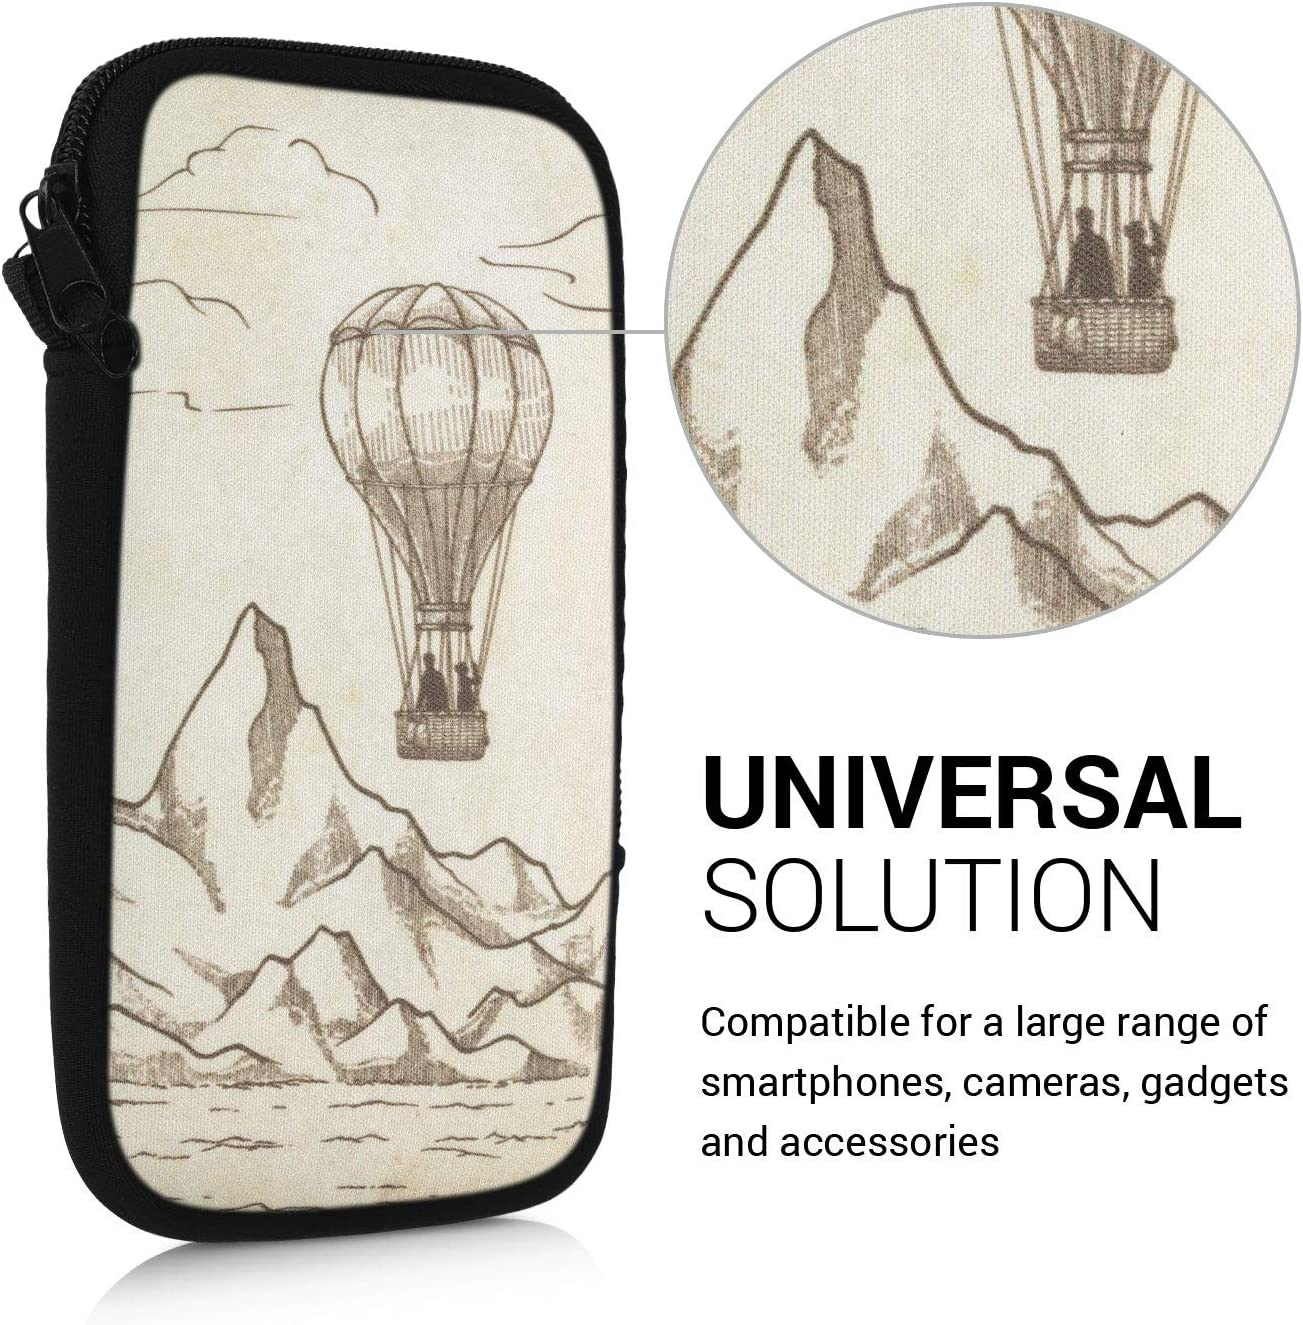 kwmobile Neoprene Sleeve for Smartphone Size L 6.5 Shock Absorbing Pouch Case Protective Phone Bag Hot Air Balloon Dark Brown//Beige